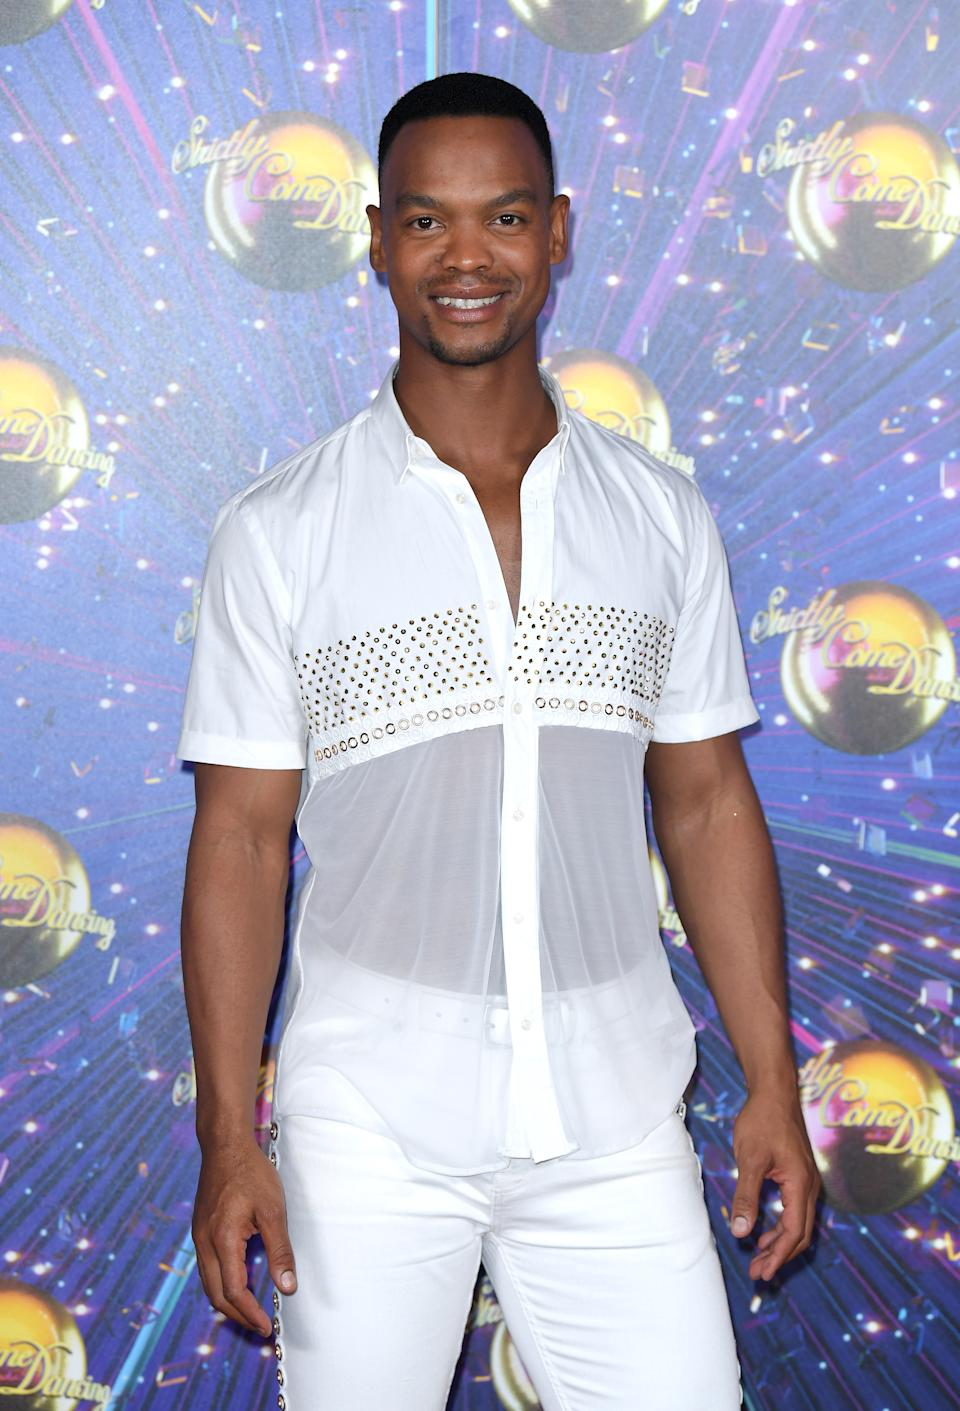 """LONDON, ENGLAND - AUGUST 26: Johannes Radebe attends the """"Strictly Come Dancing"""" launch show red carpet arrivals at Television Centre on August 26, 2019 in London, England. (Photo by Karwai Tang/WireImage)"""